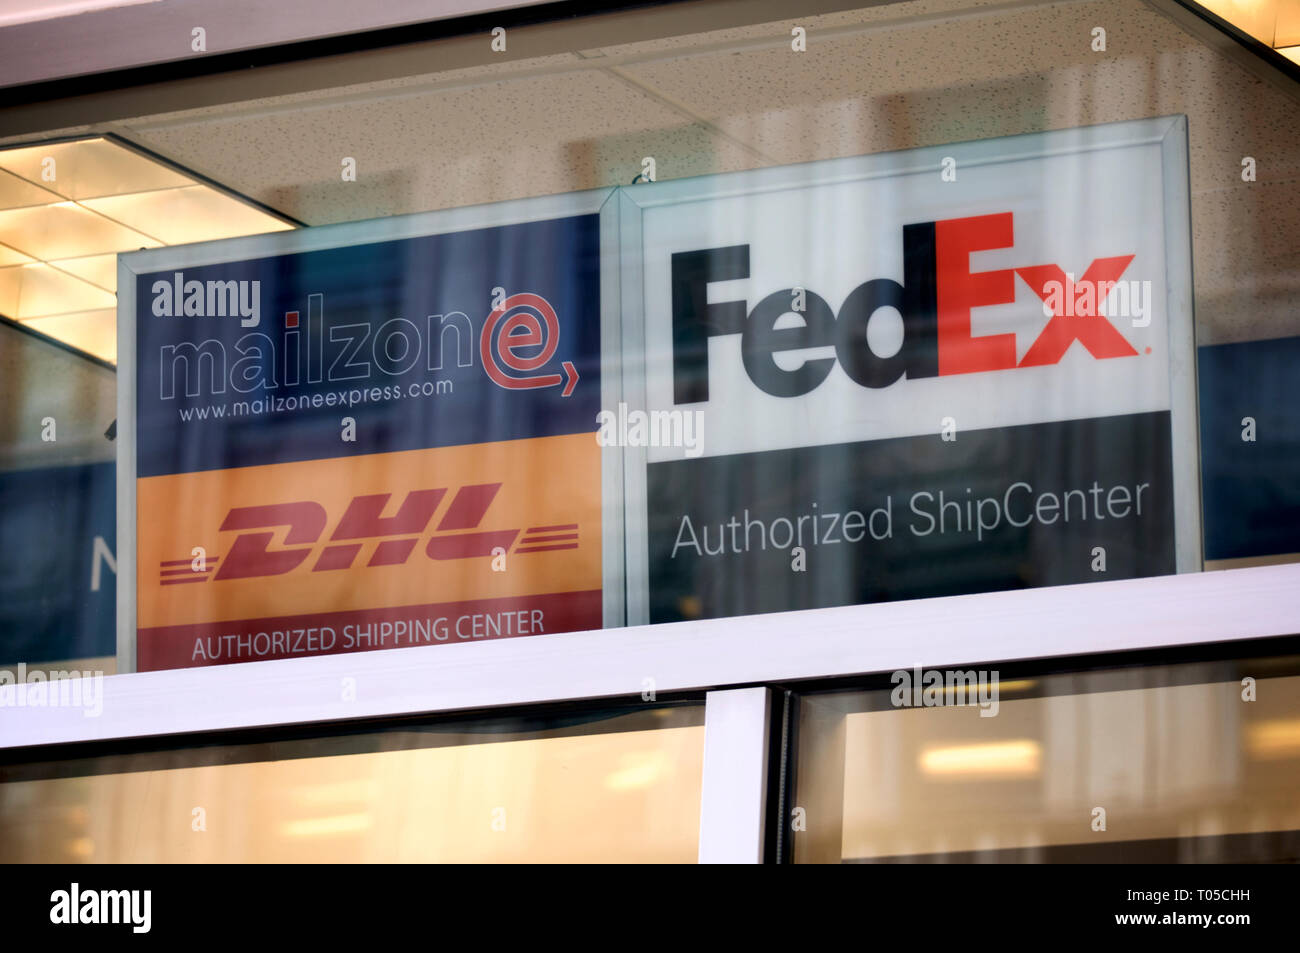 Signage above a branch of a shipping center in Center City Philadelphia, PA on March 15, 2019. - Stock Image